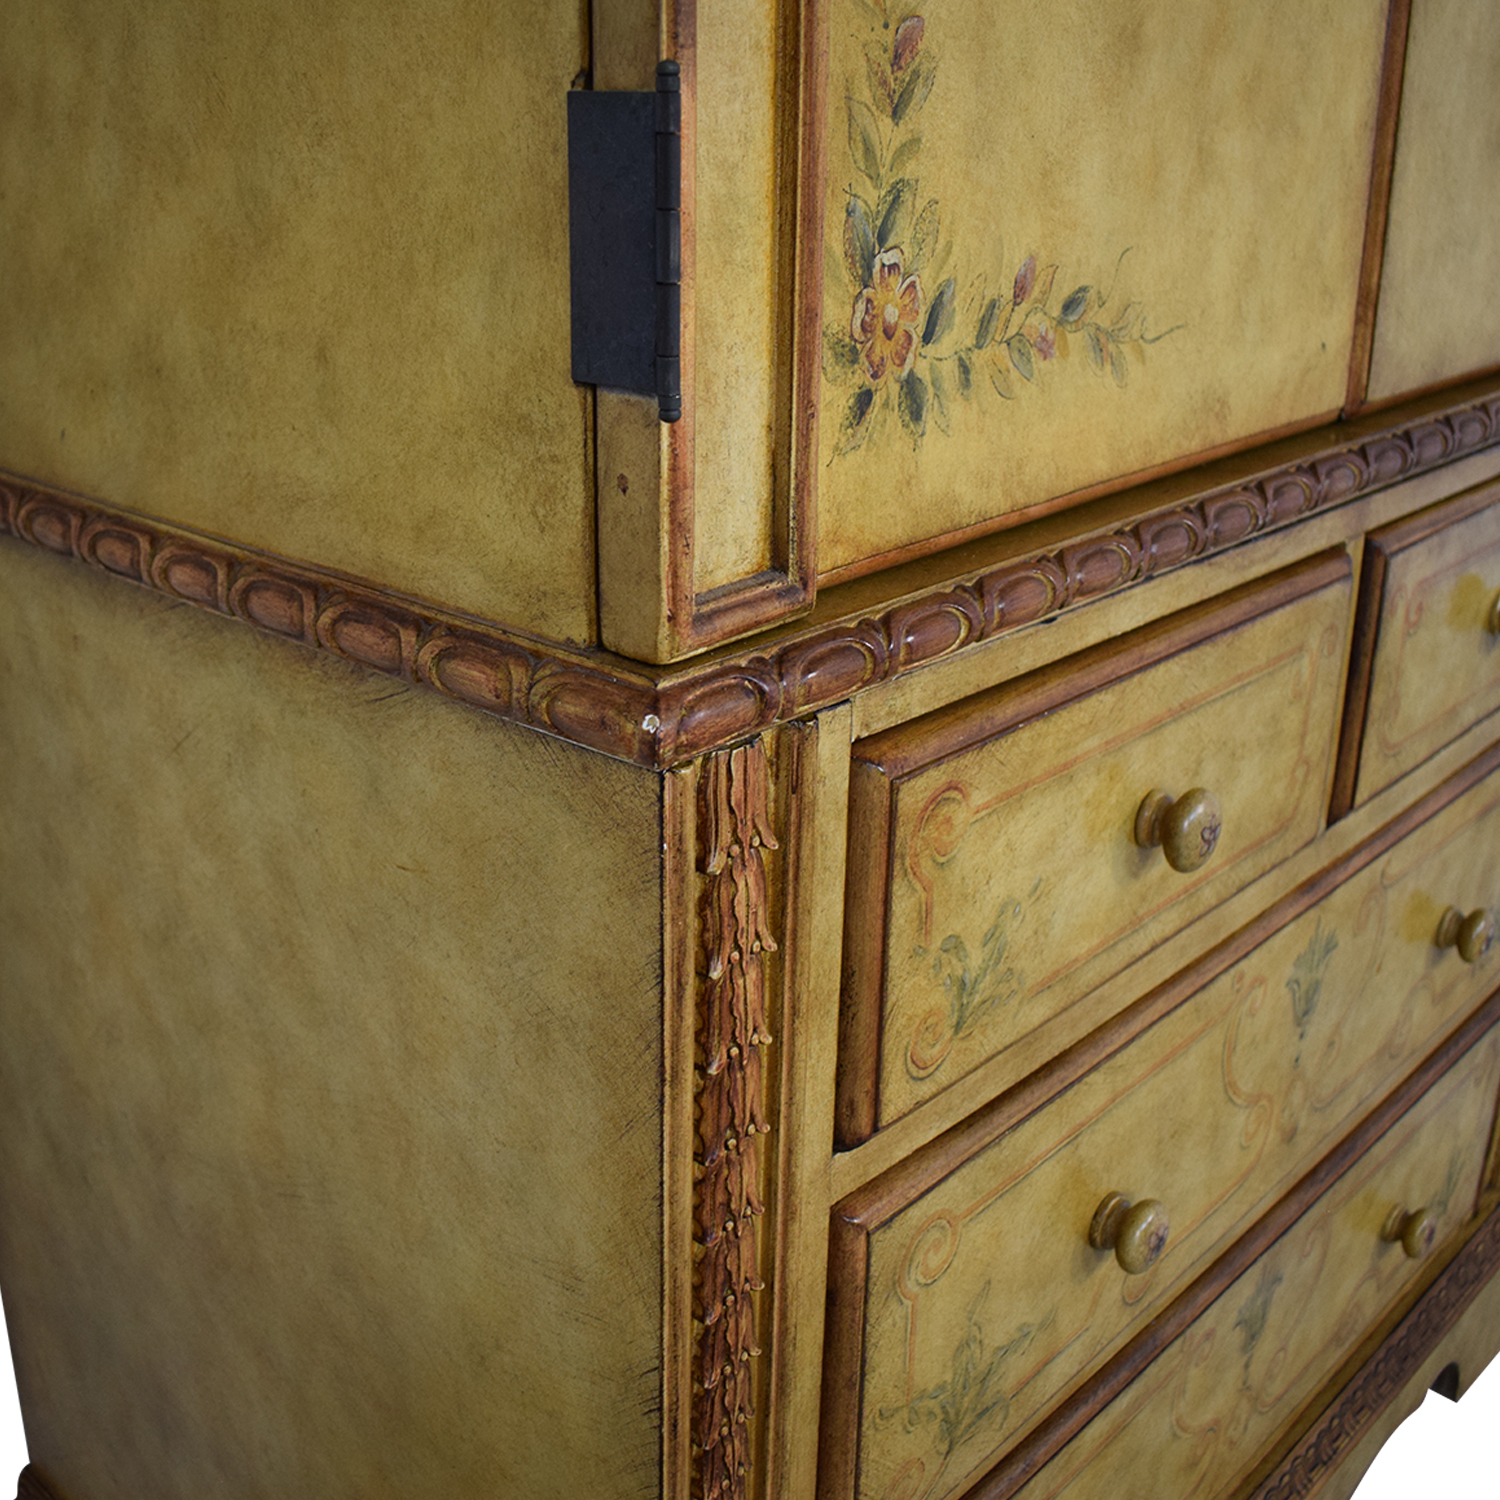 Domain Home Domain Home Hand-Painted Armoire nyc